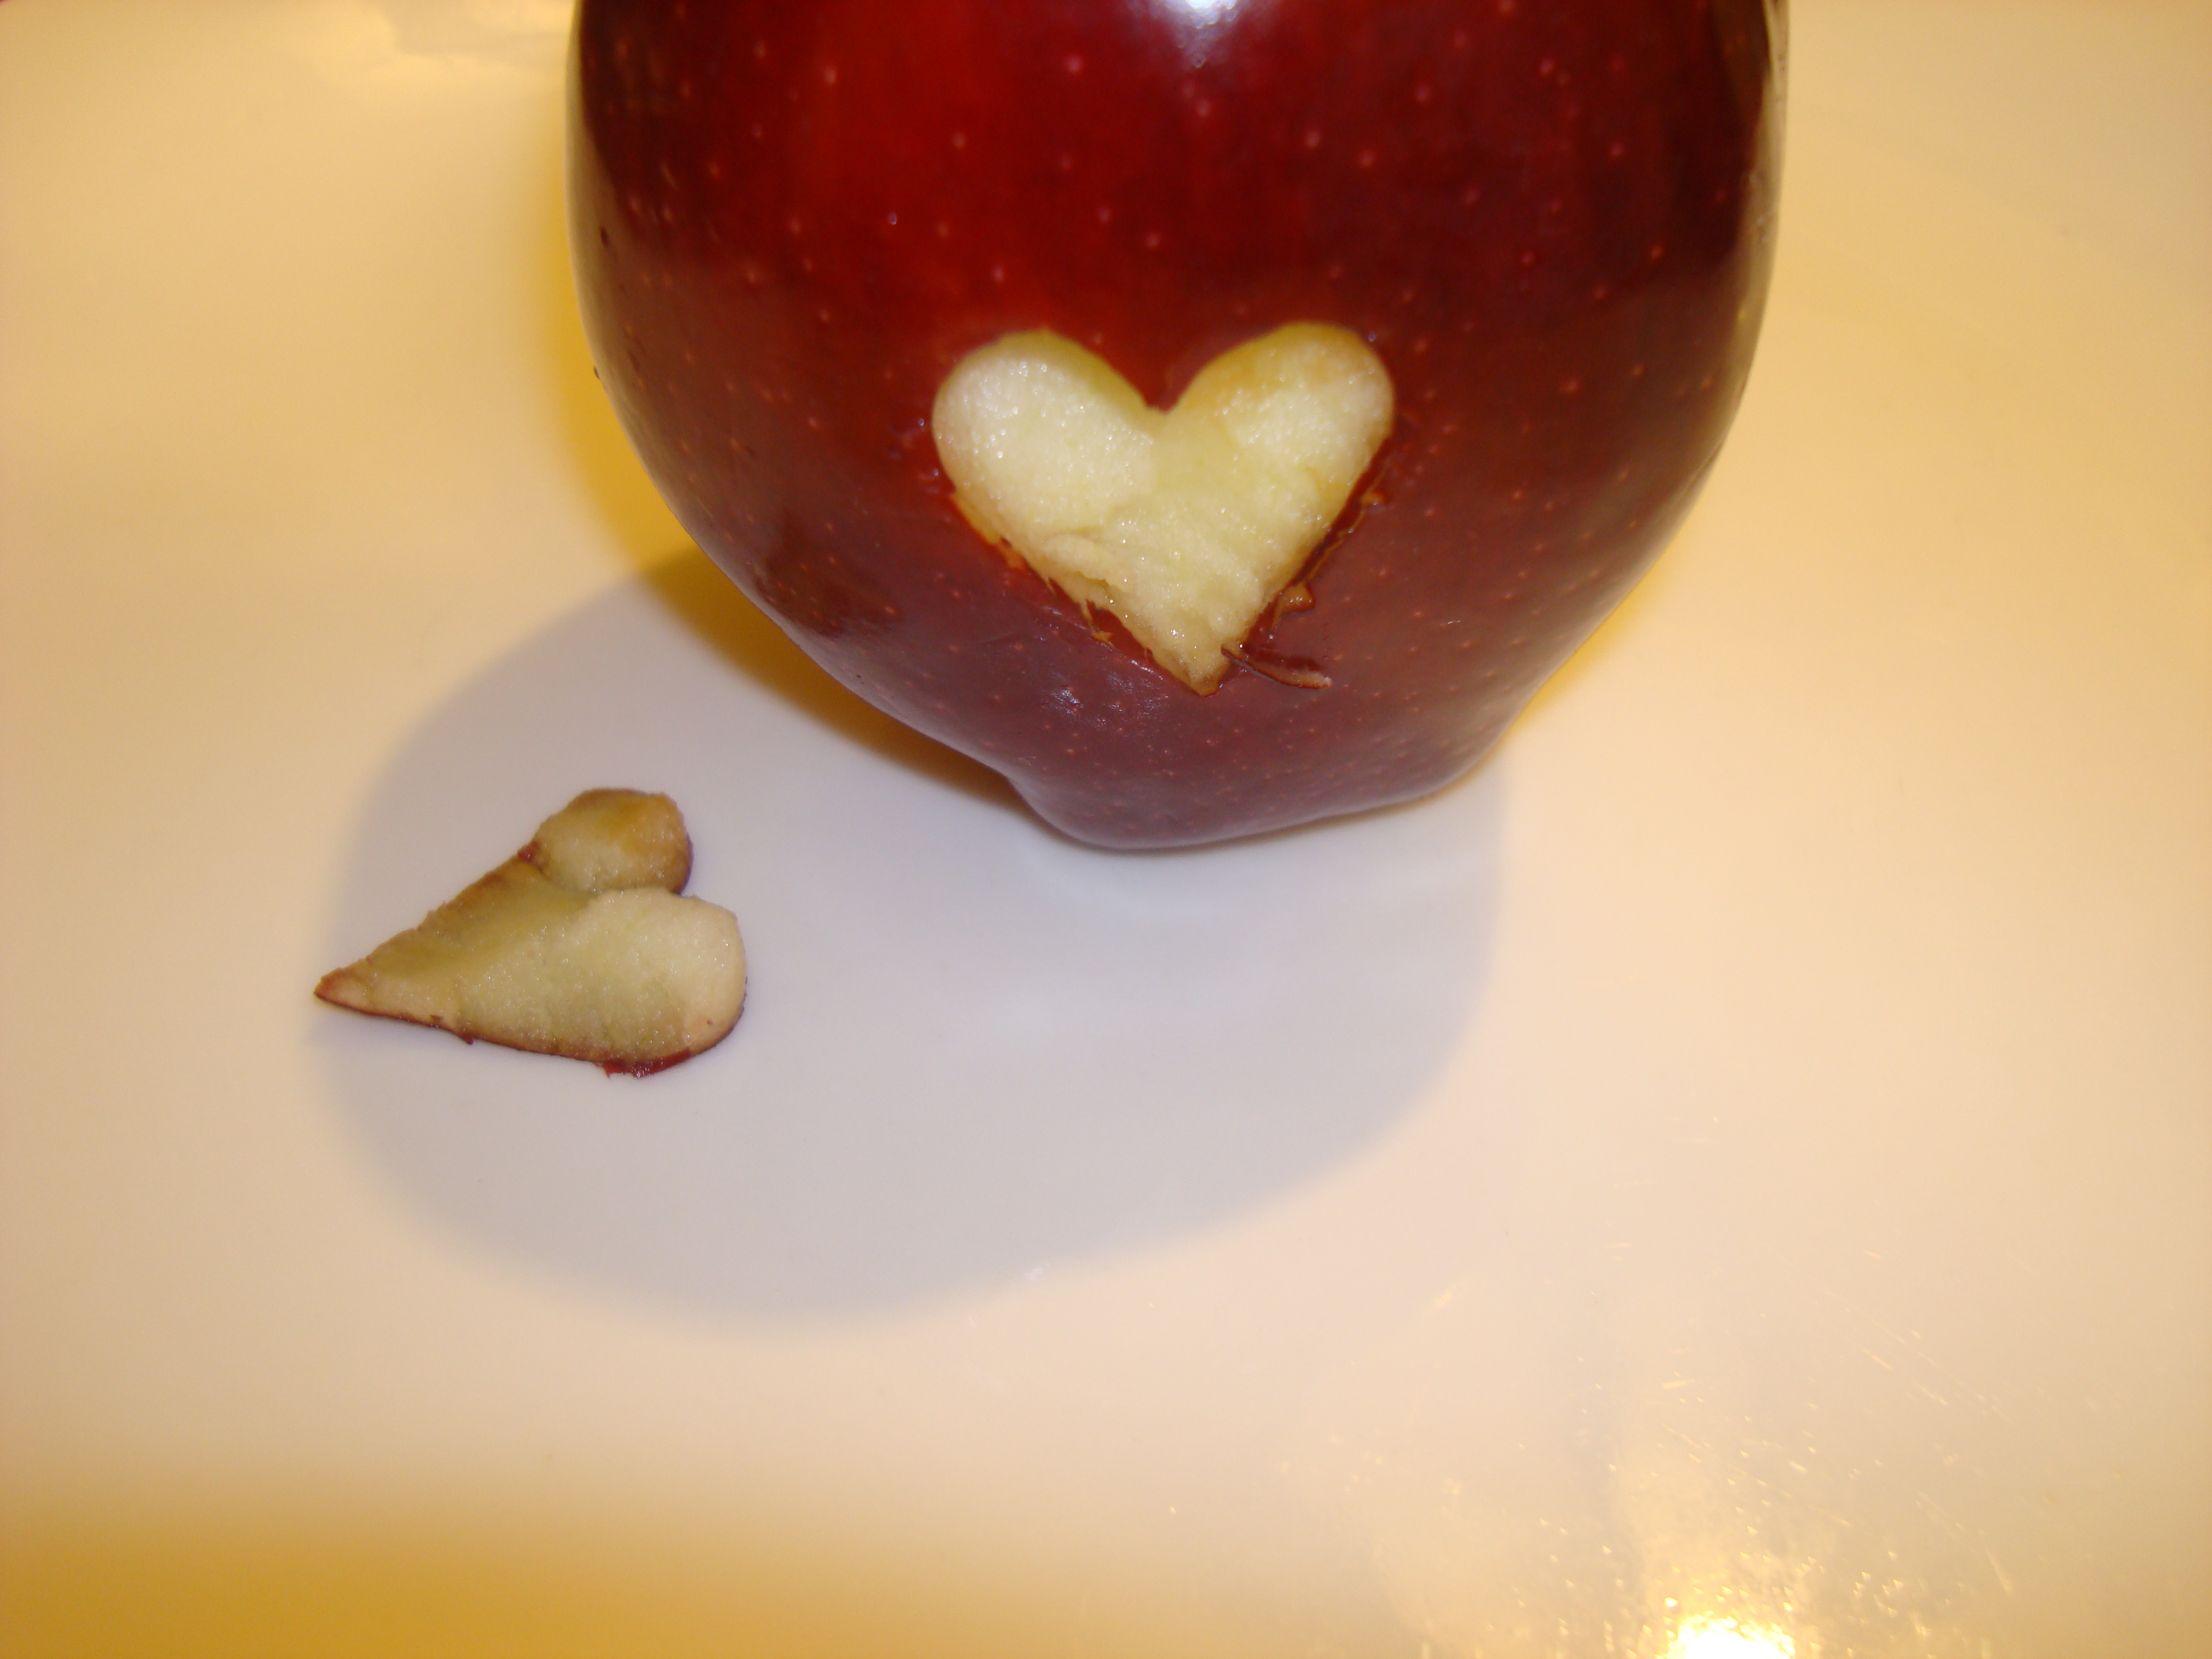 Picture of Carving the Apple Heart